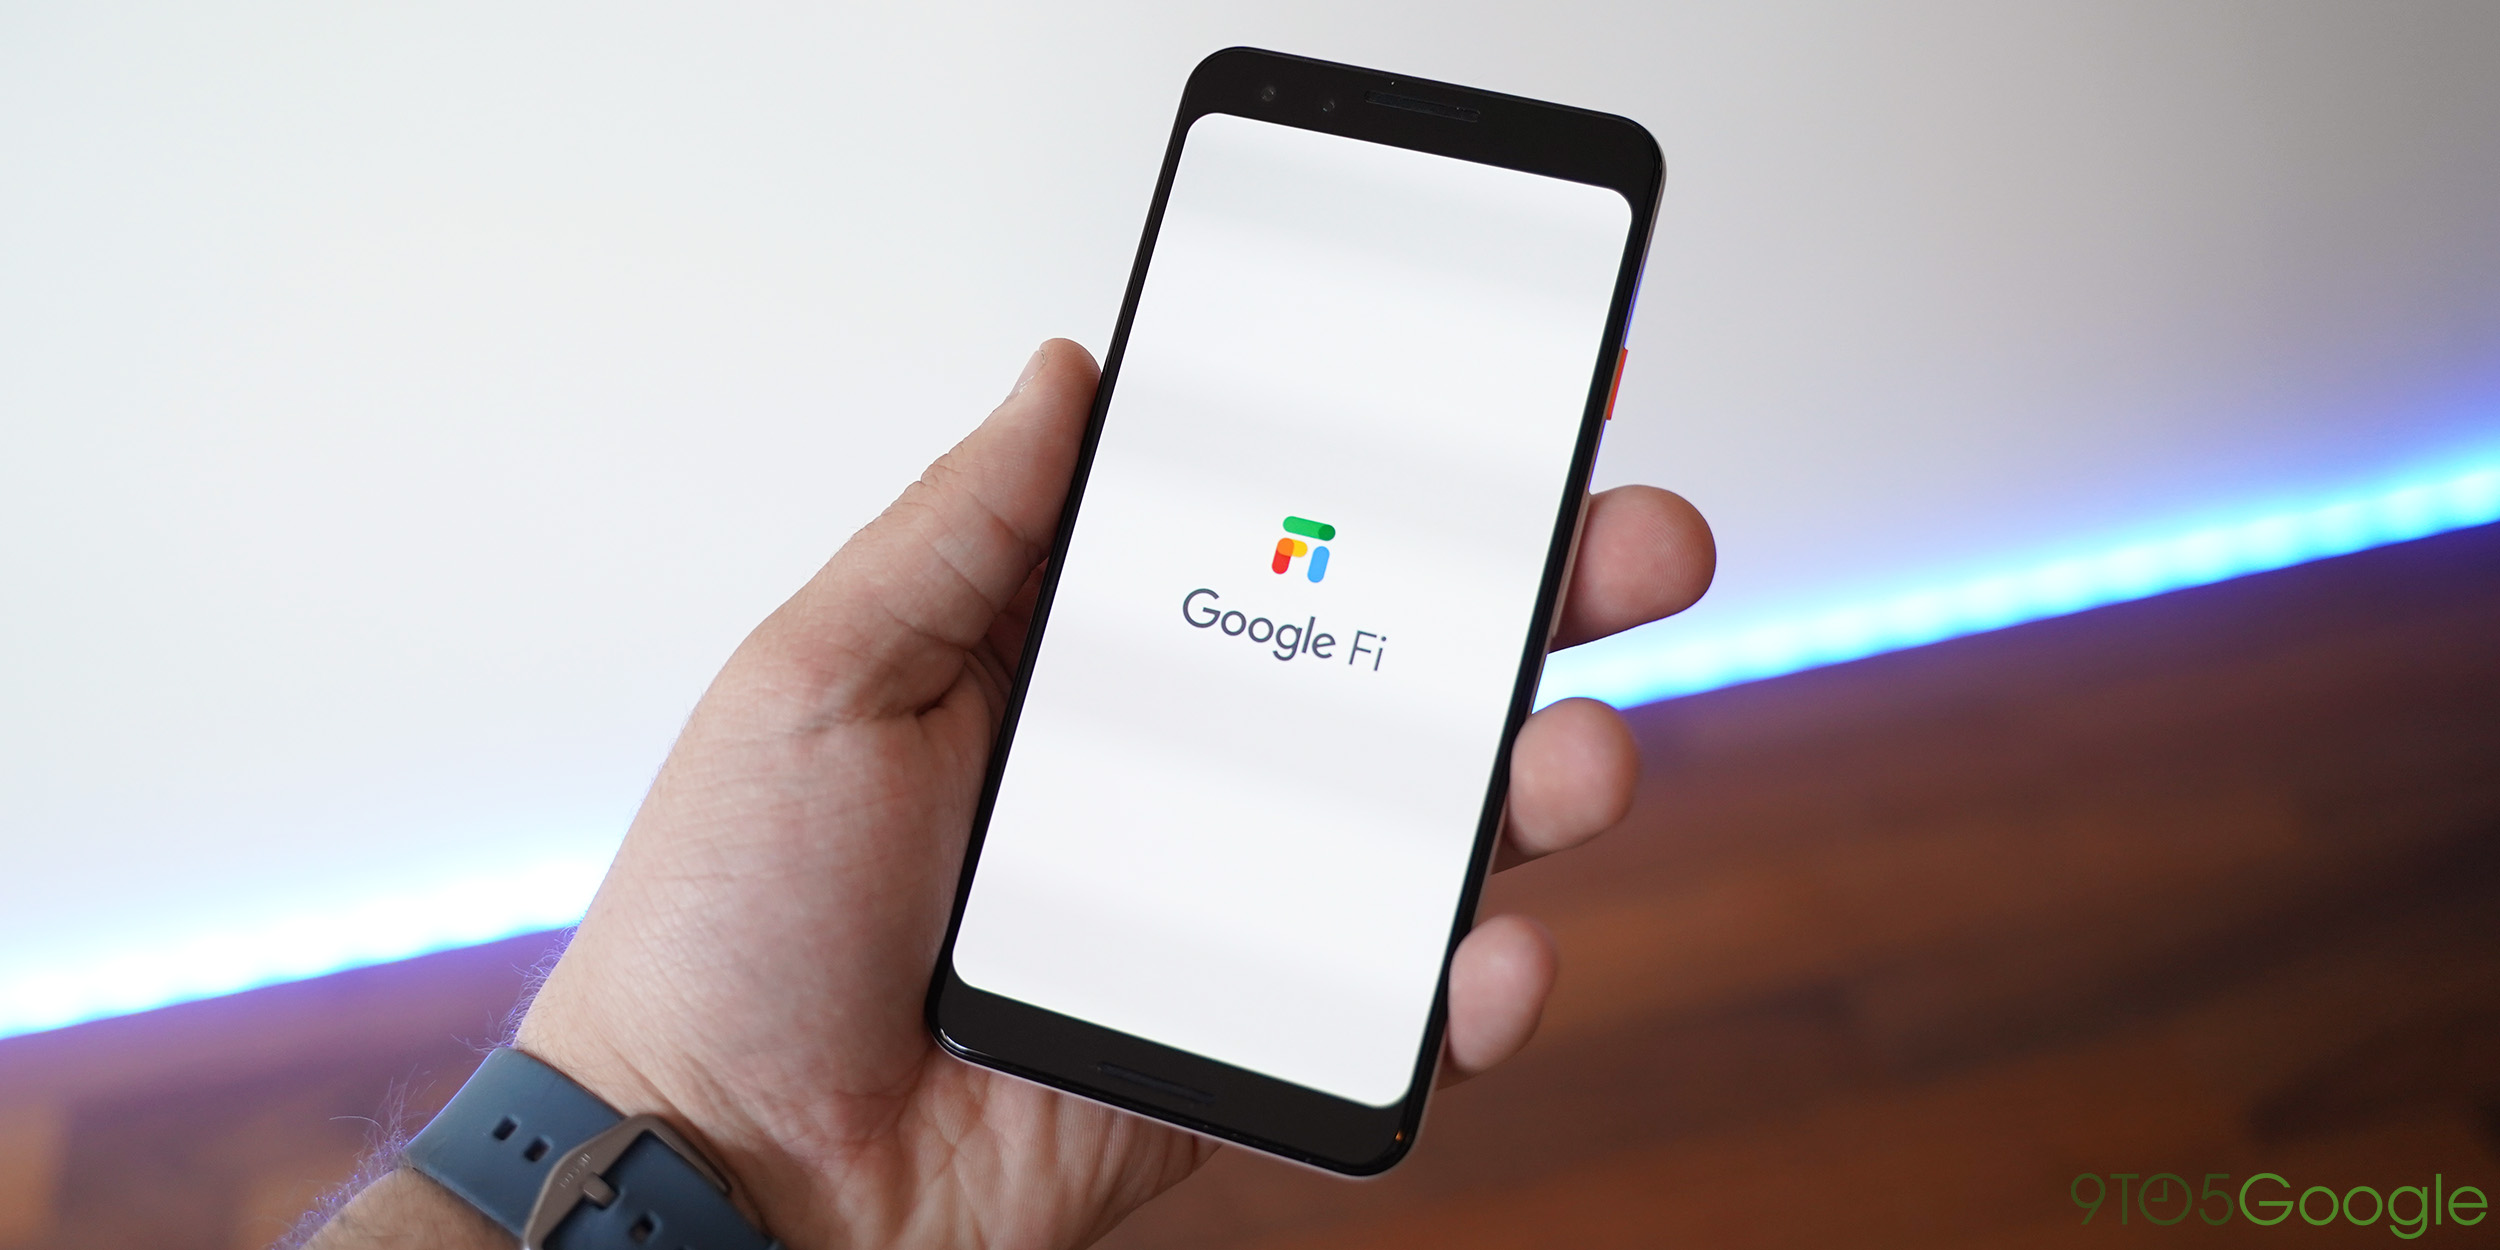 New Google Fi users get a free month of unlimited service when they bring their own phone